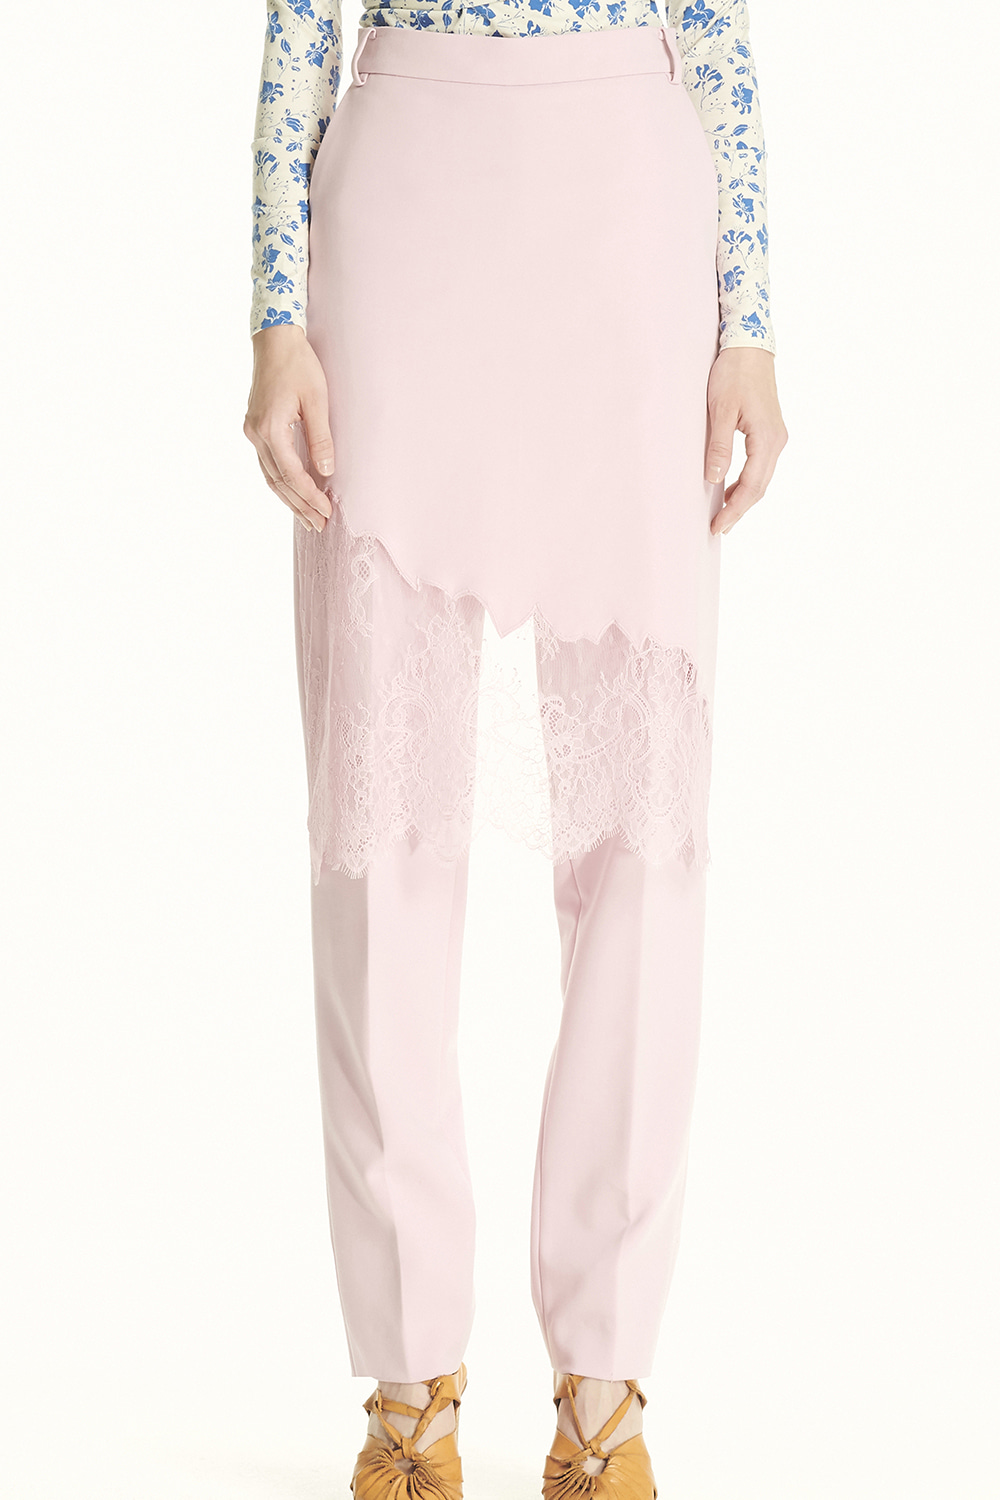 PS21 SKIRT COVERED PINK PANTS